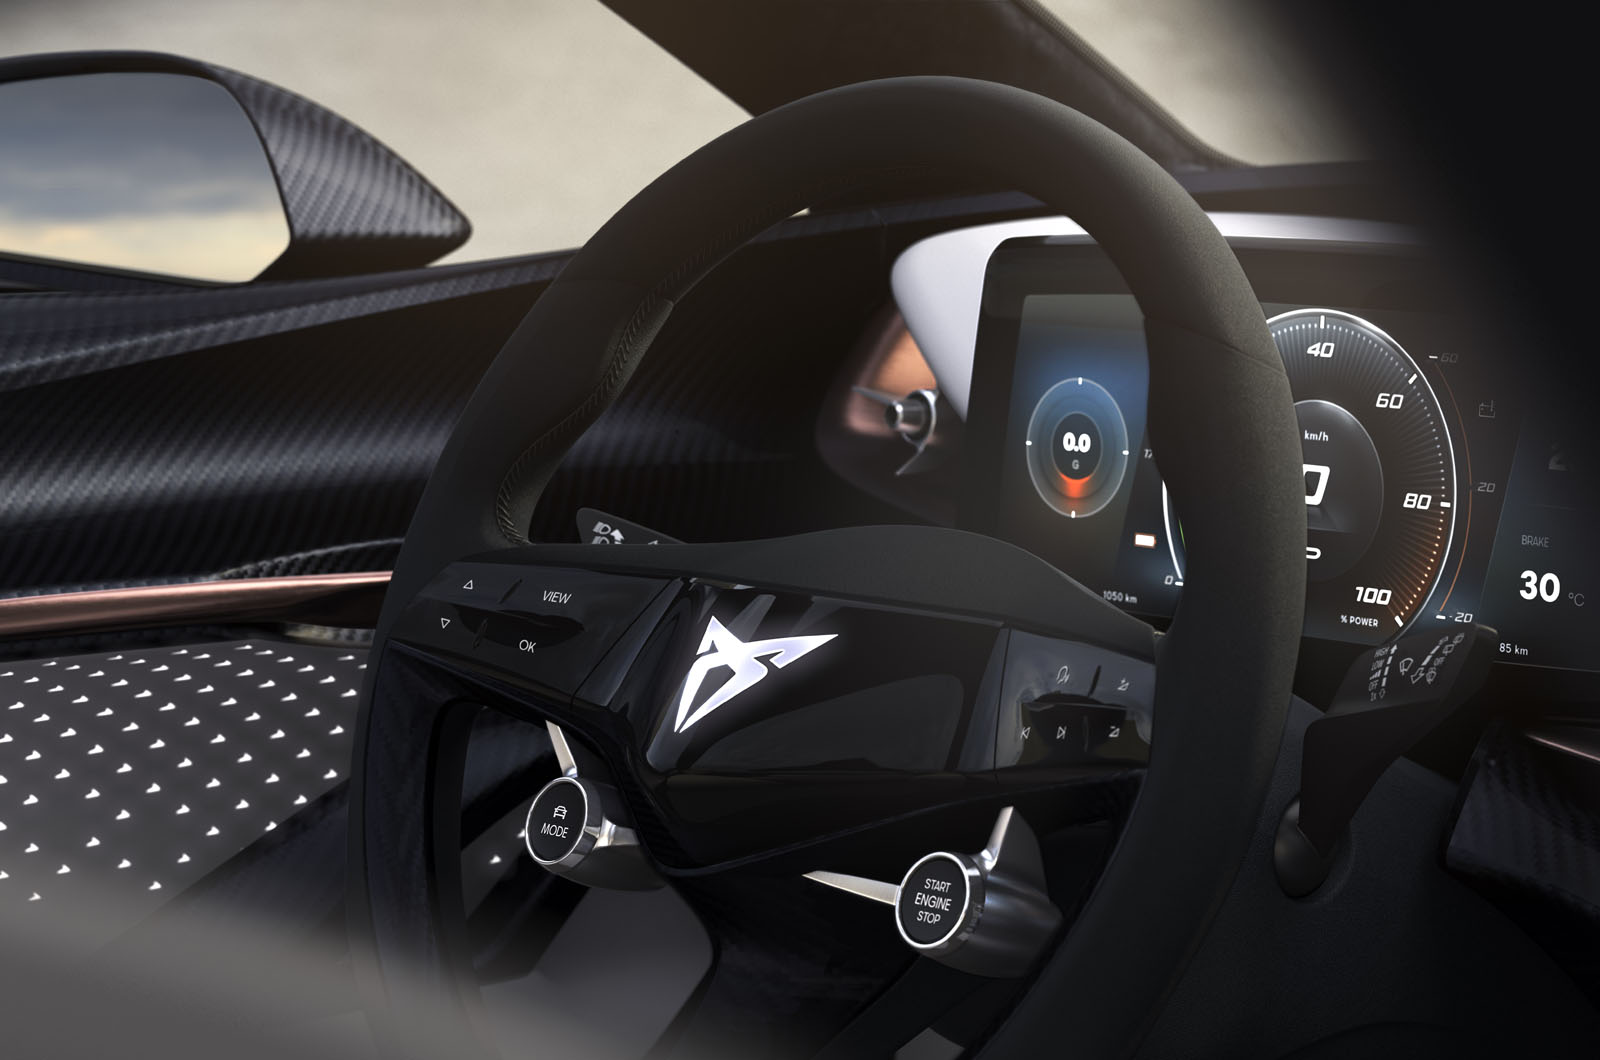 Cupra previews interior of first EV ahead of Frankfurt reveal  Autocar